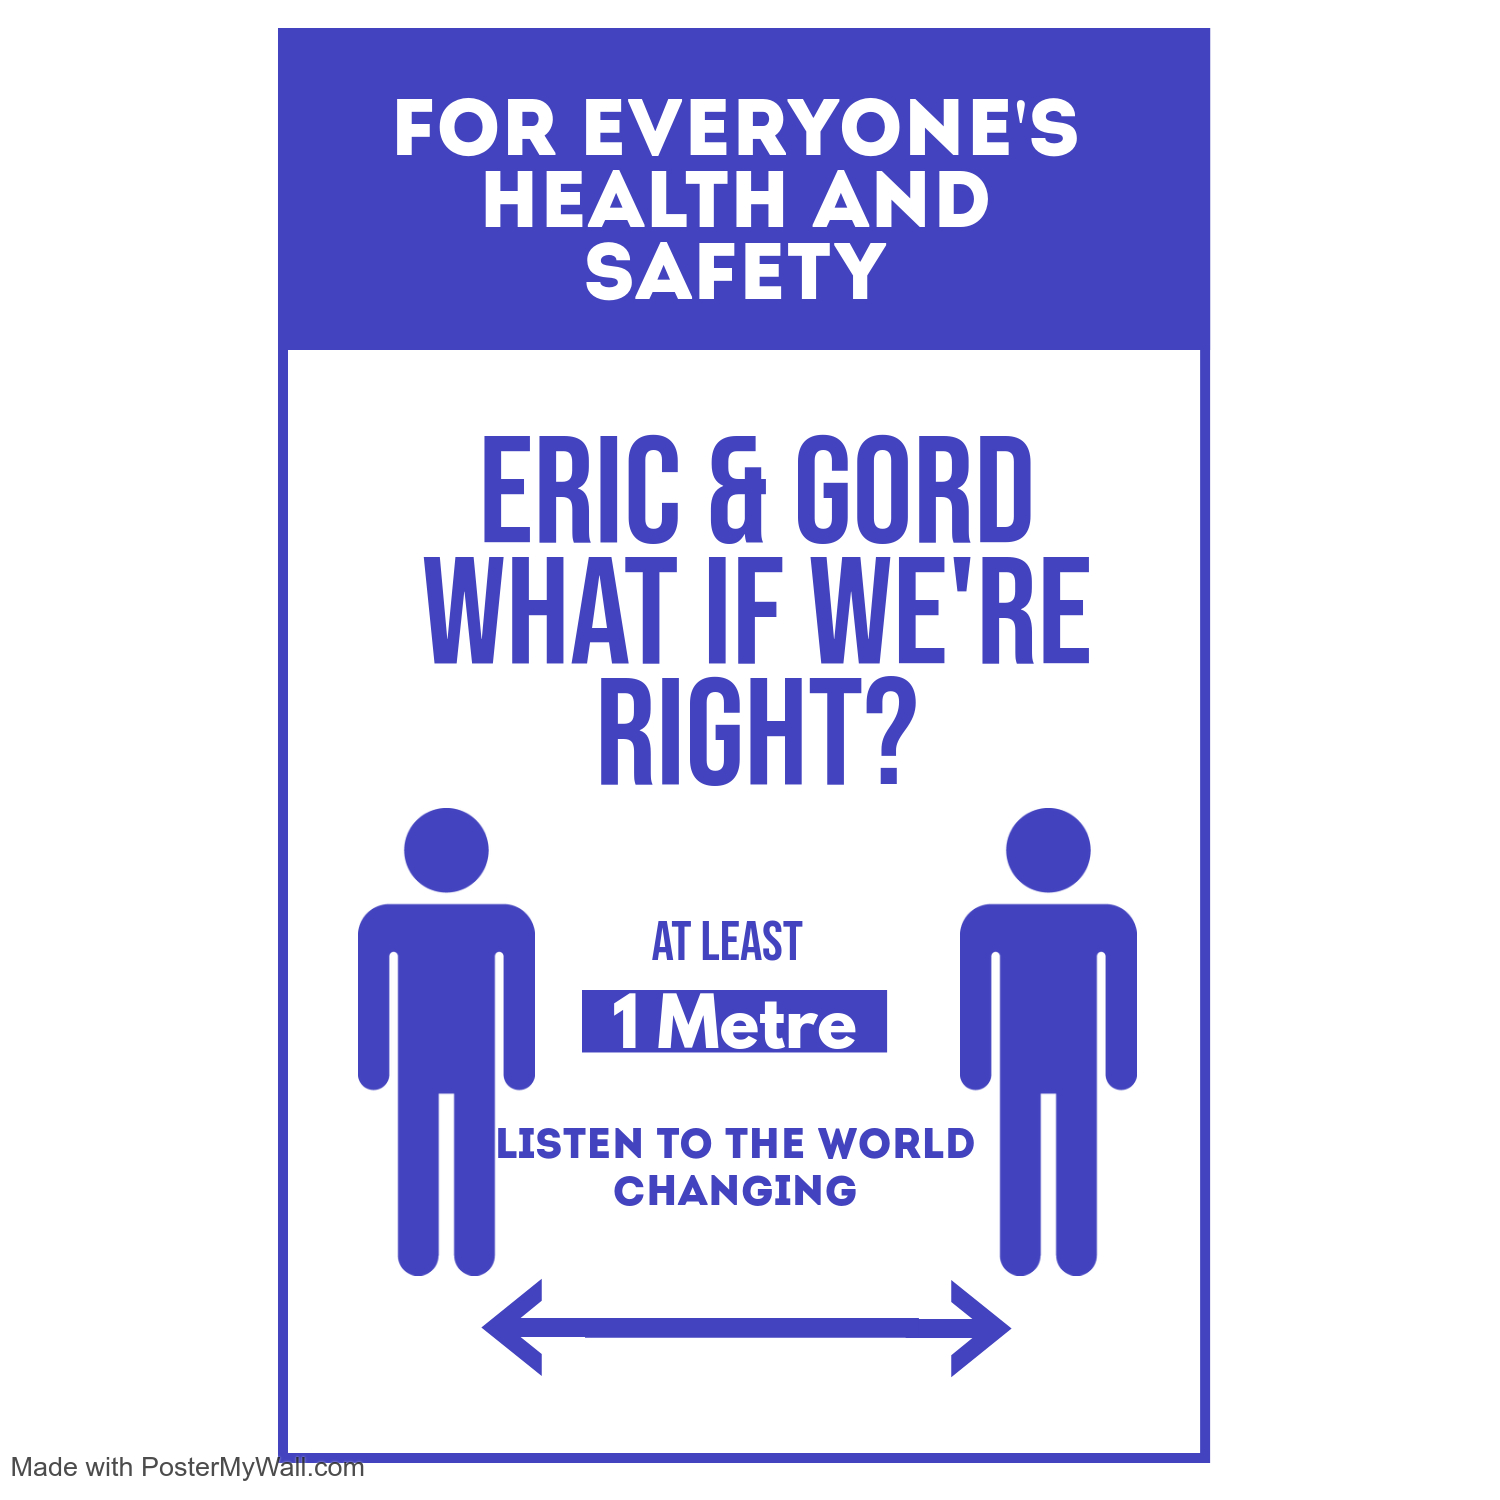 Eric & Gord: What If We're Right?